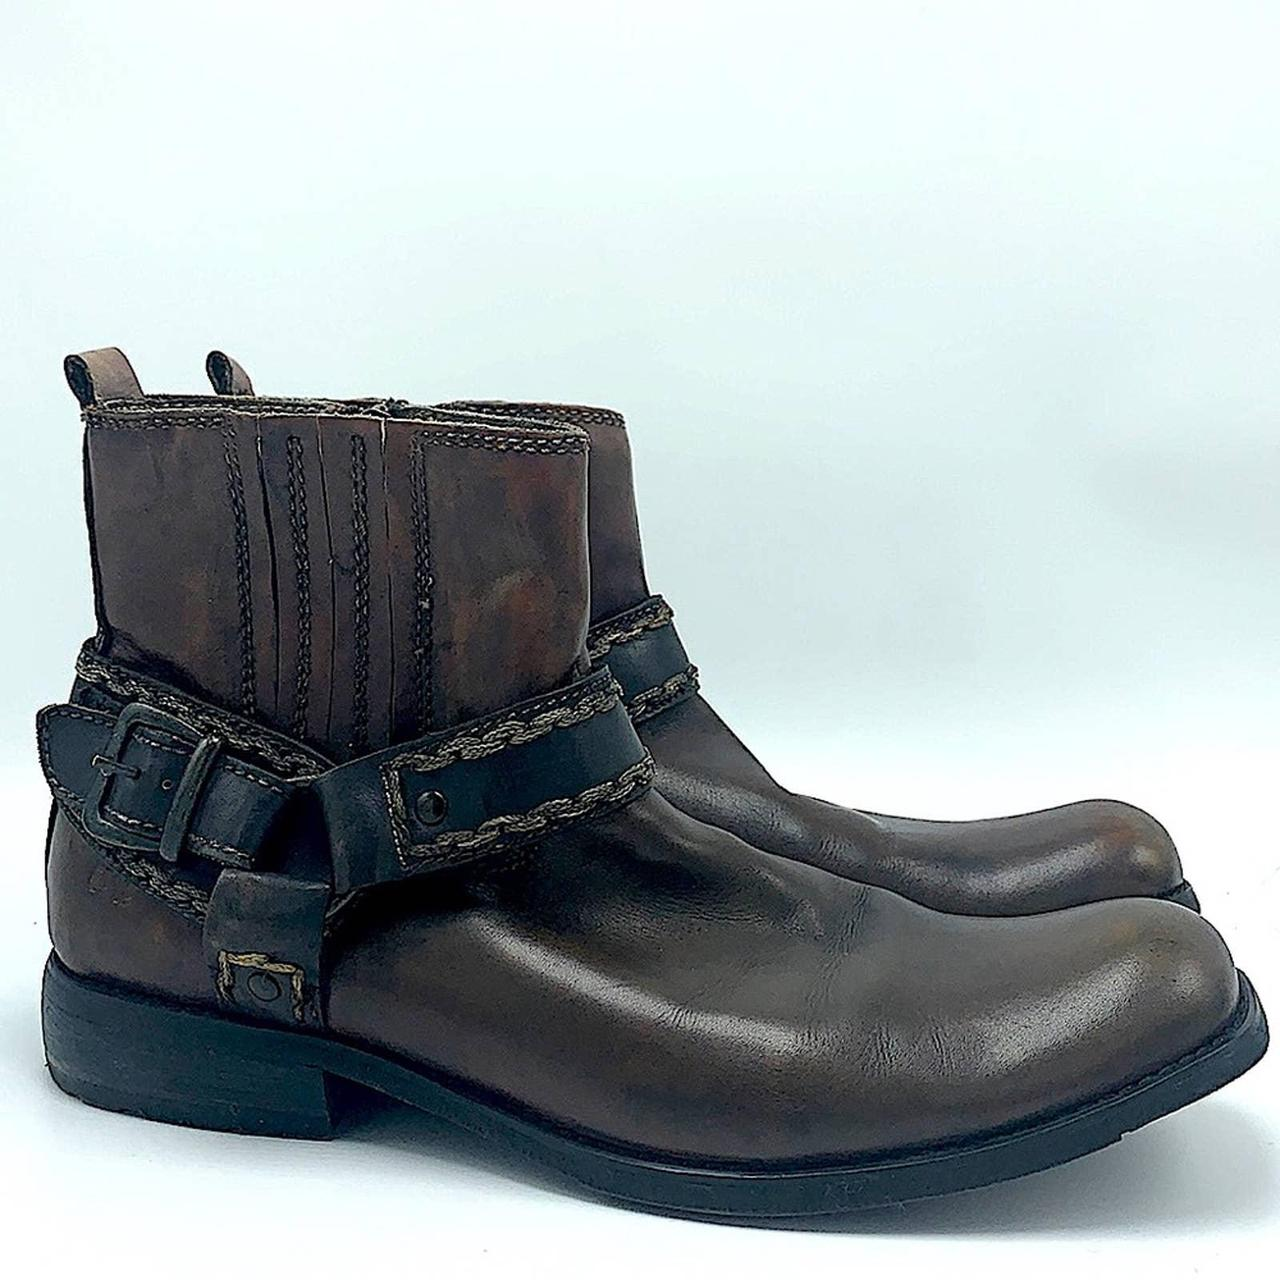 Product Image 1 - Bed Stu men's brown leather